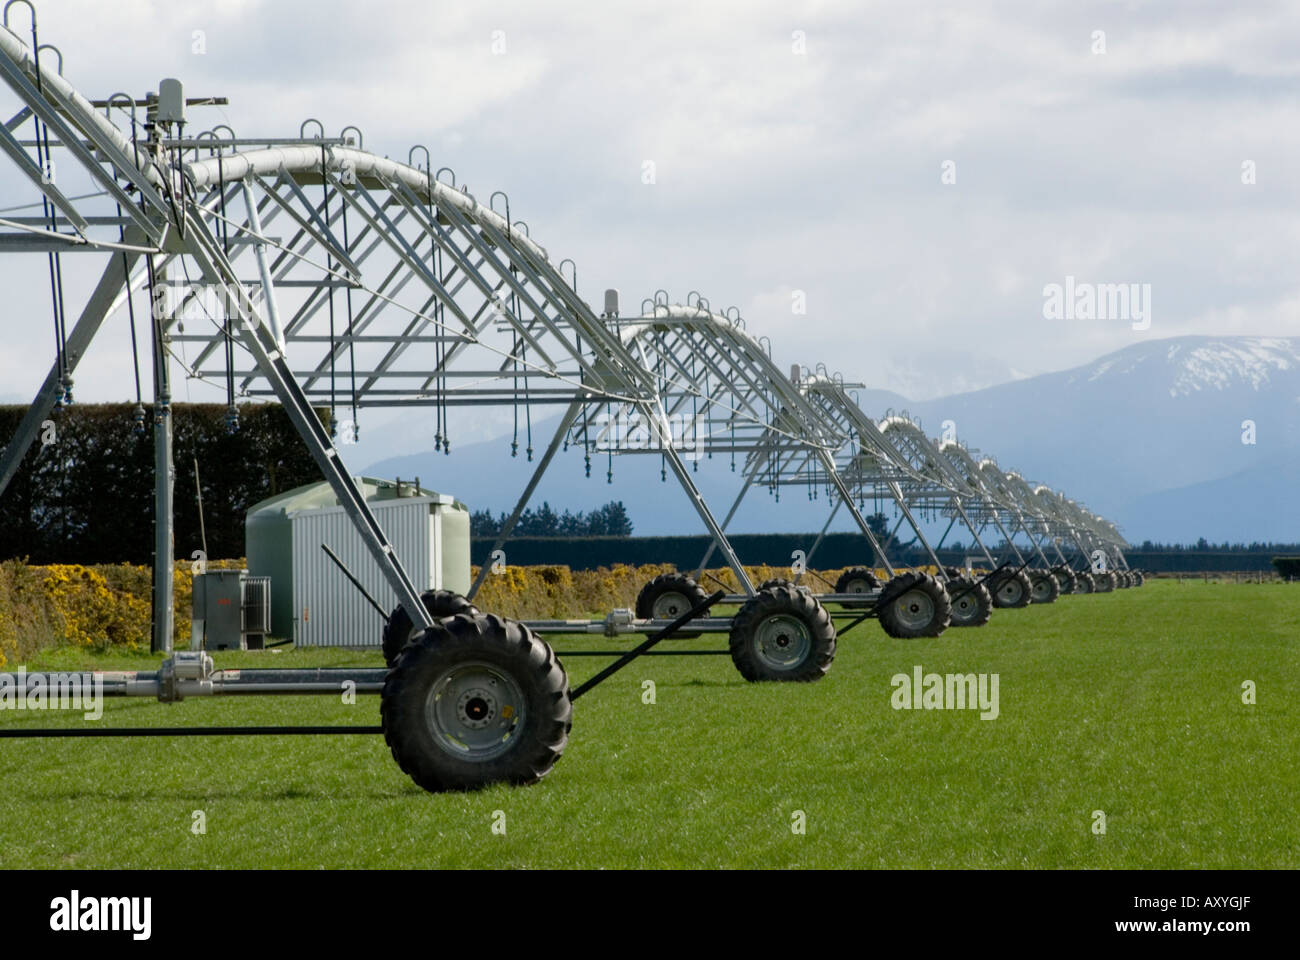 Large mobile sprinkler system receding into distance - Stock Image